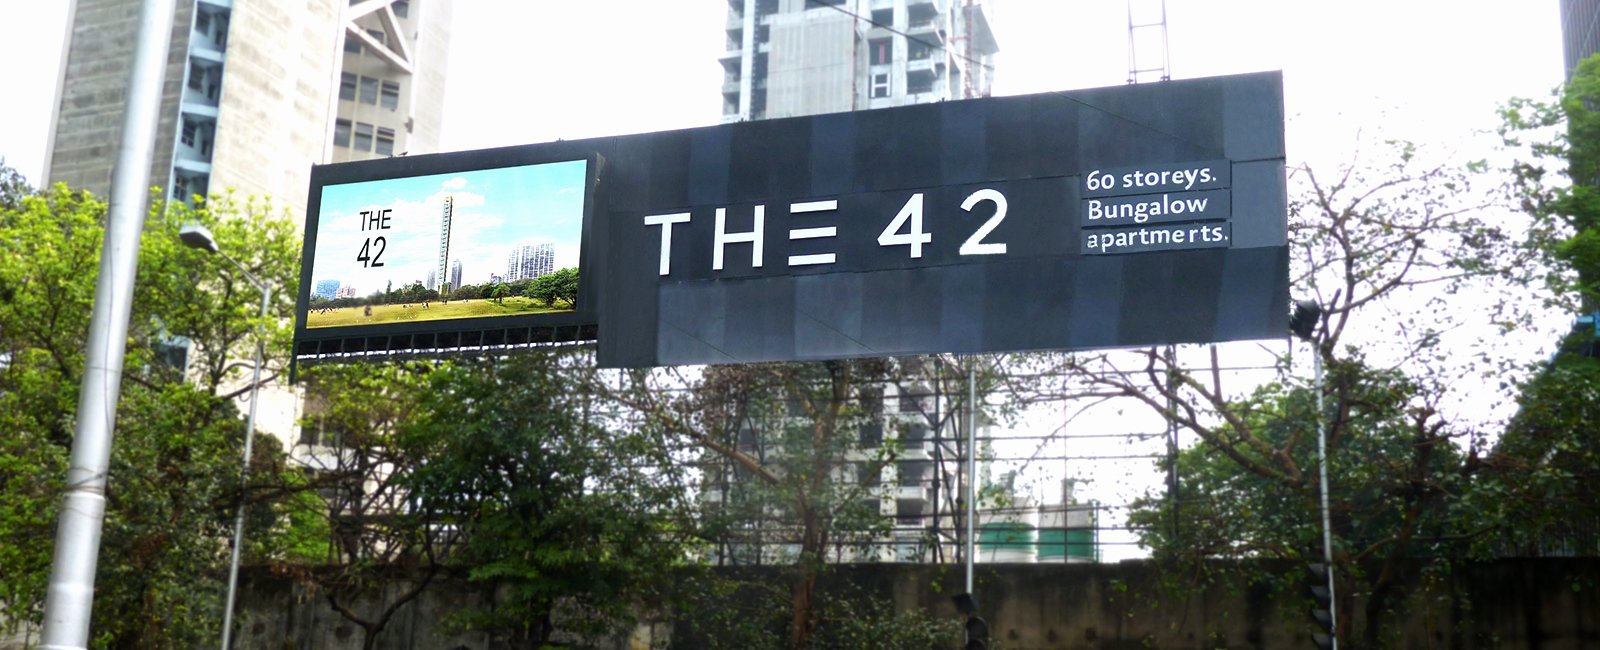 Outdoor LED display for Mani Group